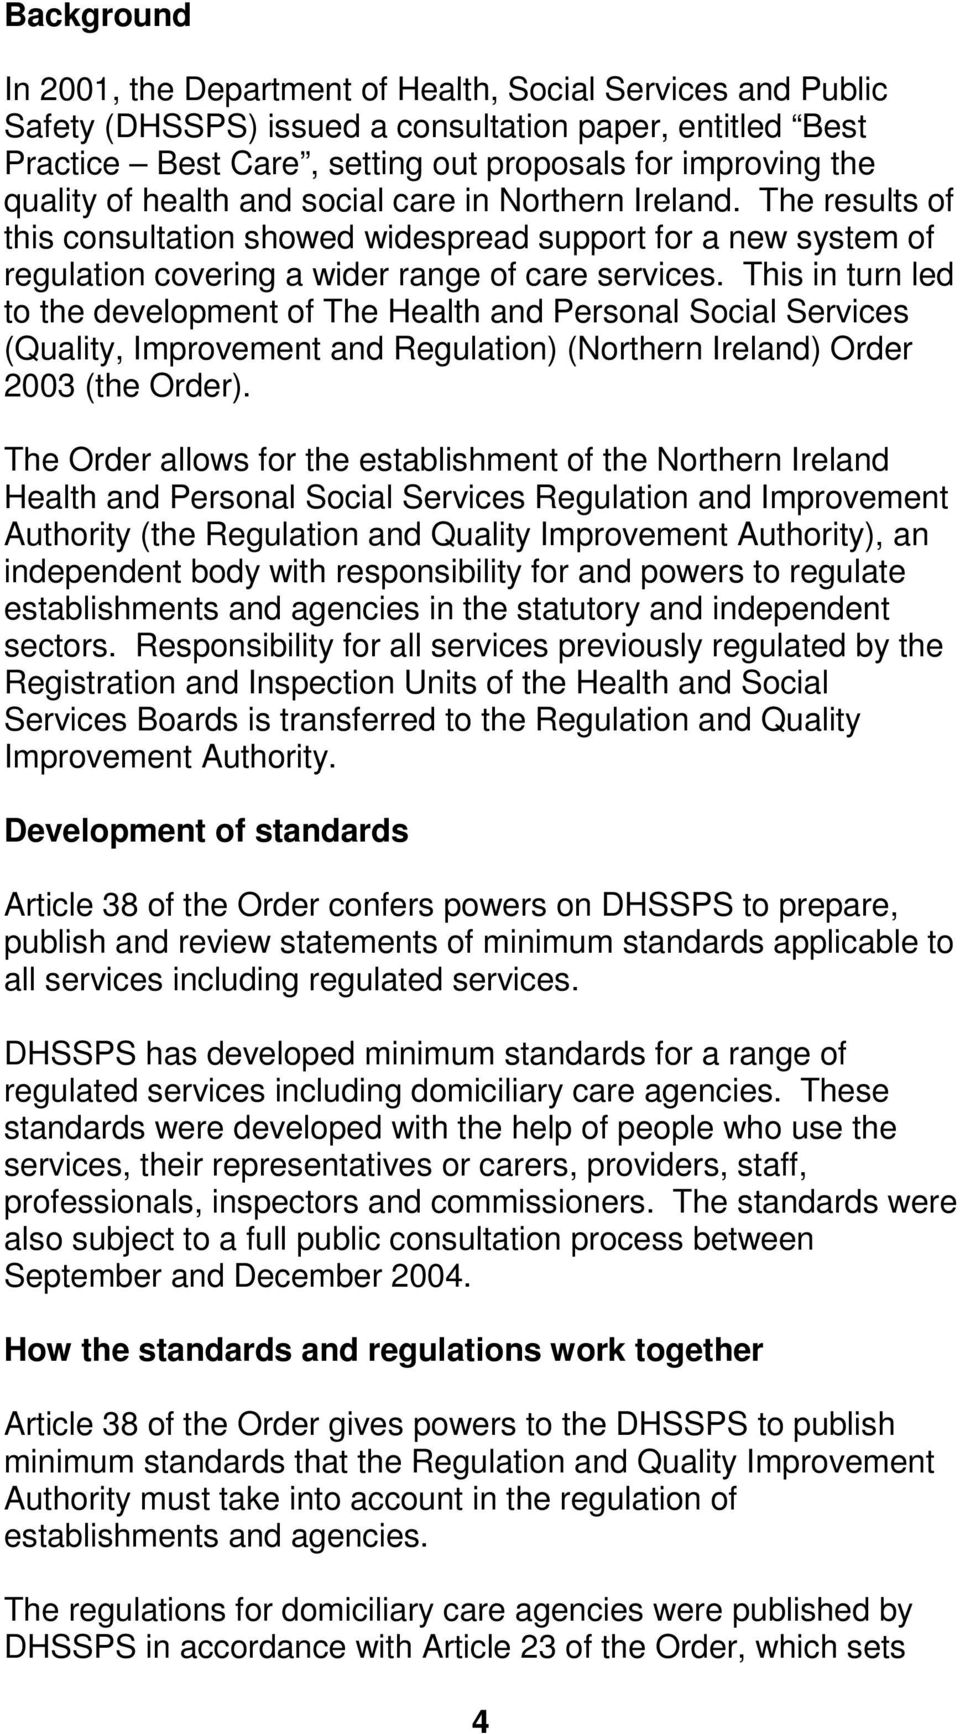 This in turn led to the development of The Health and Personal Social Services (Quality, Improvement and Regulation) (Northern Ireland) Order 2003 (the Order).